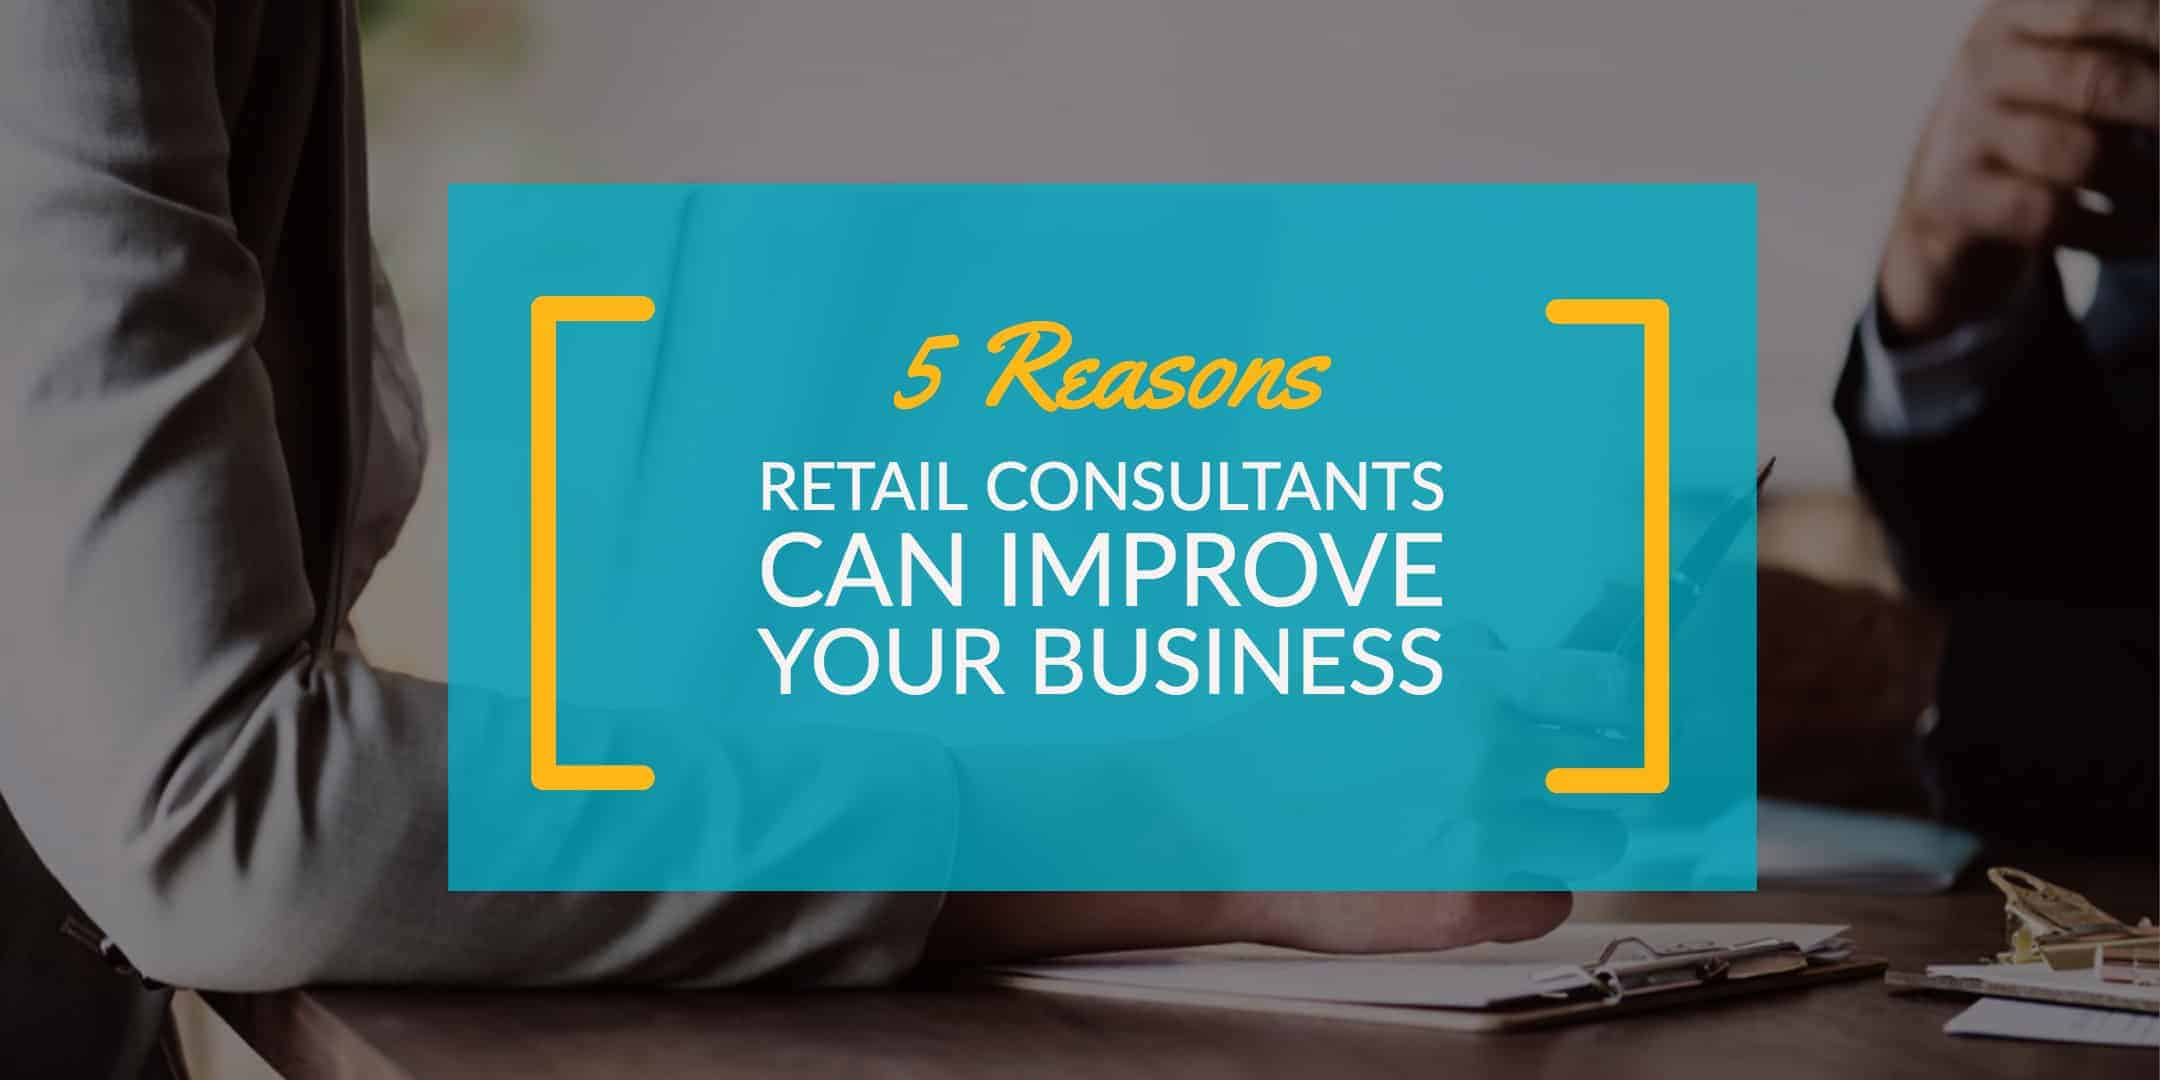 5 Reasons Retail Consultants Can Improve Your Business StrasGlobal